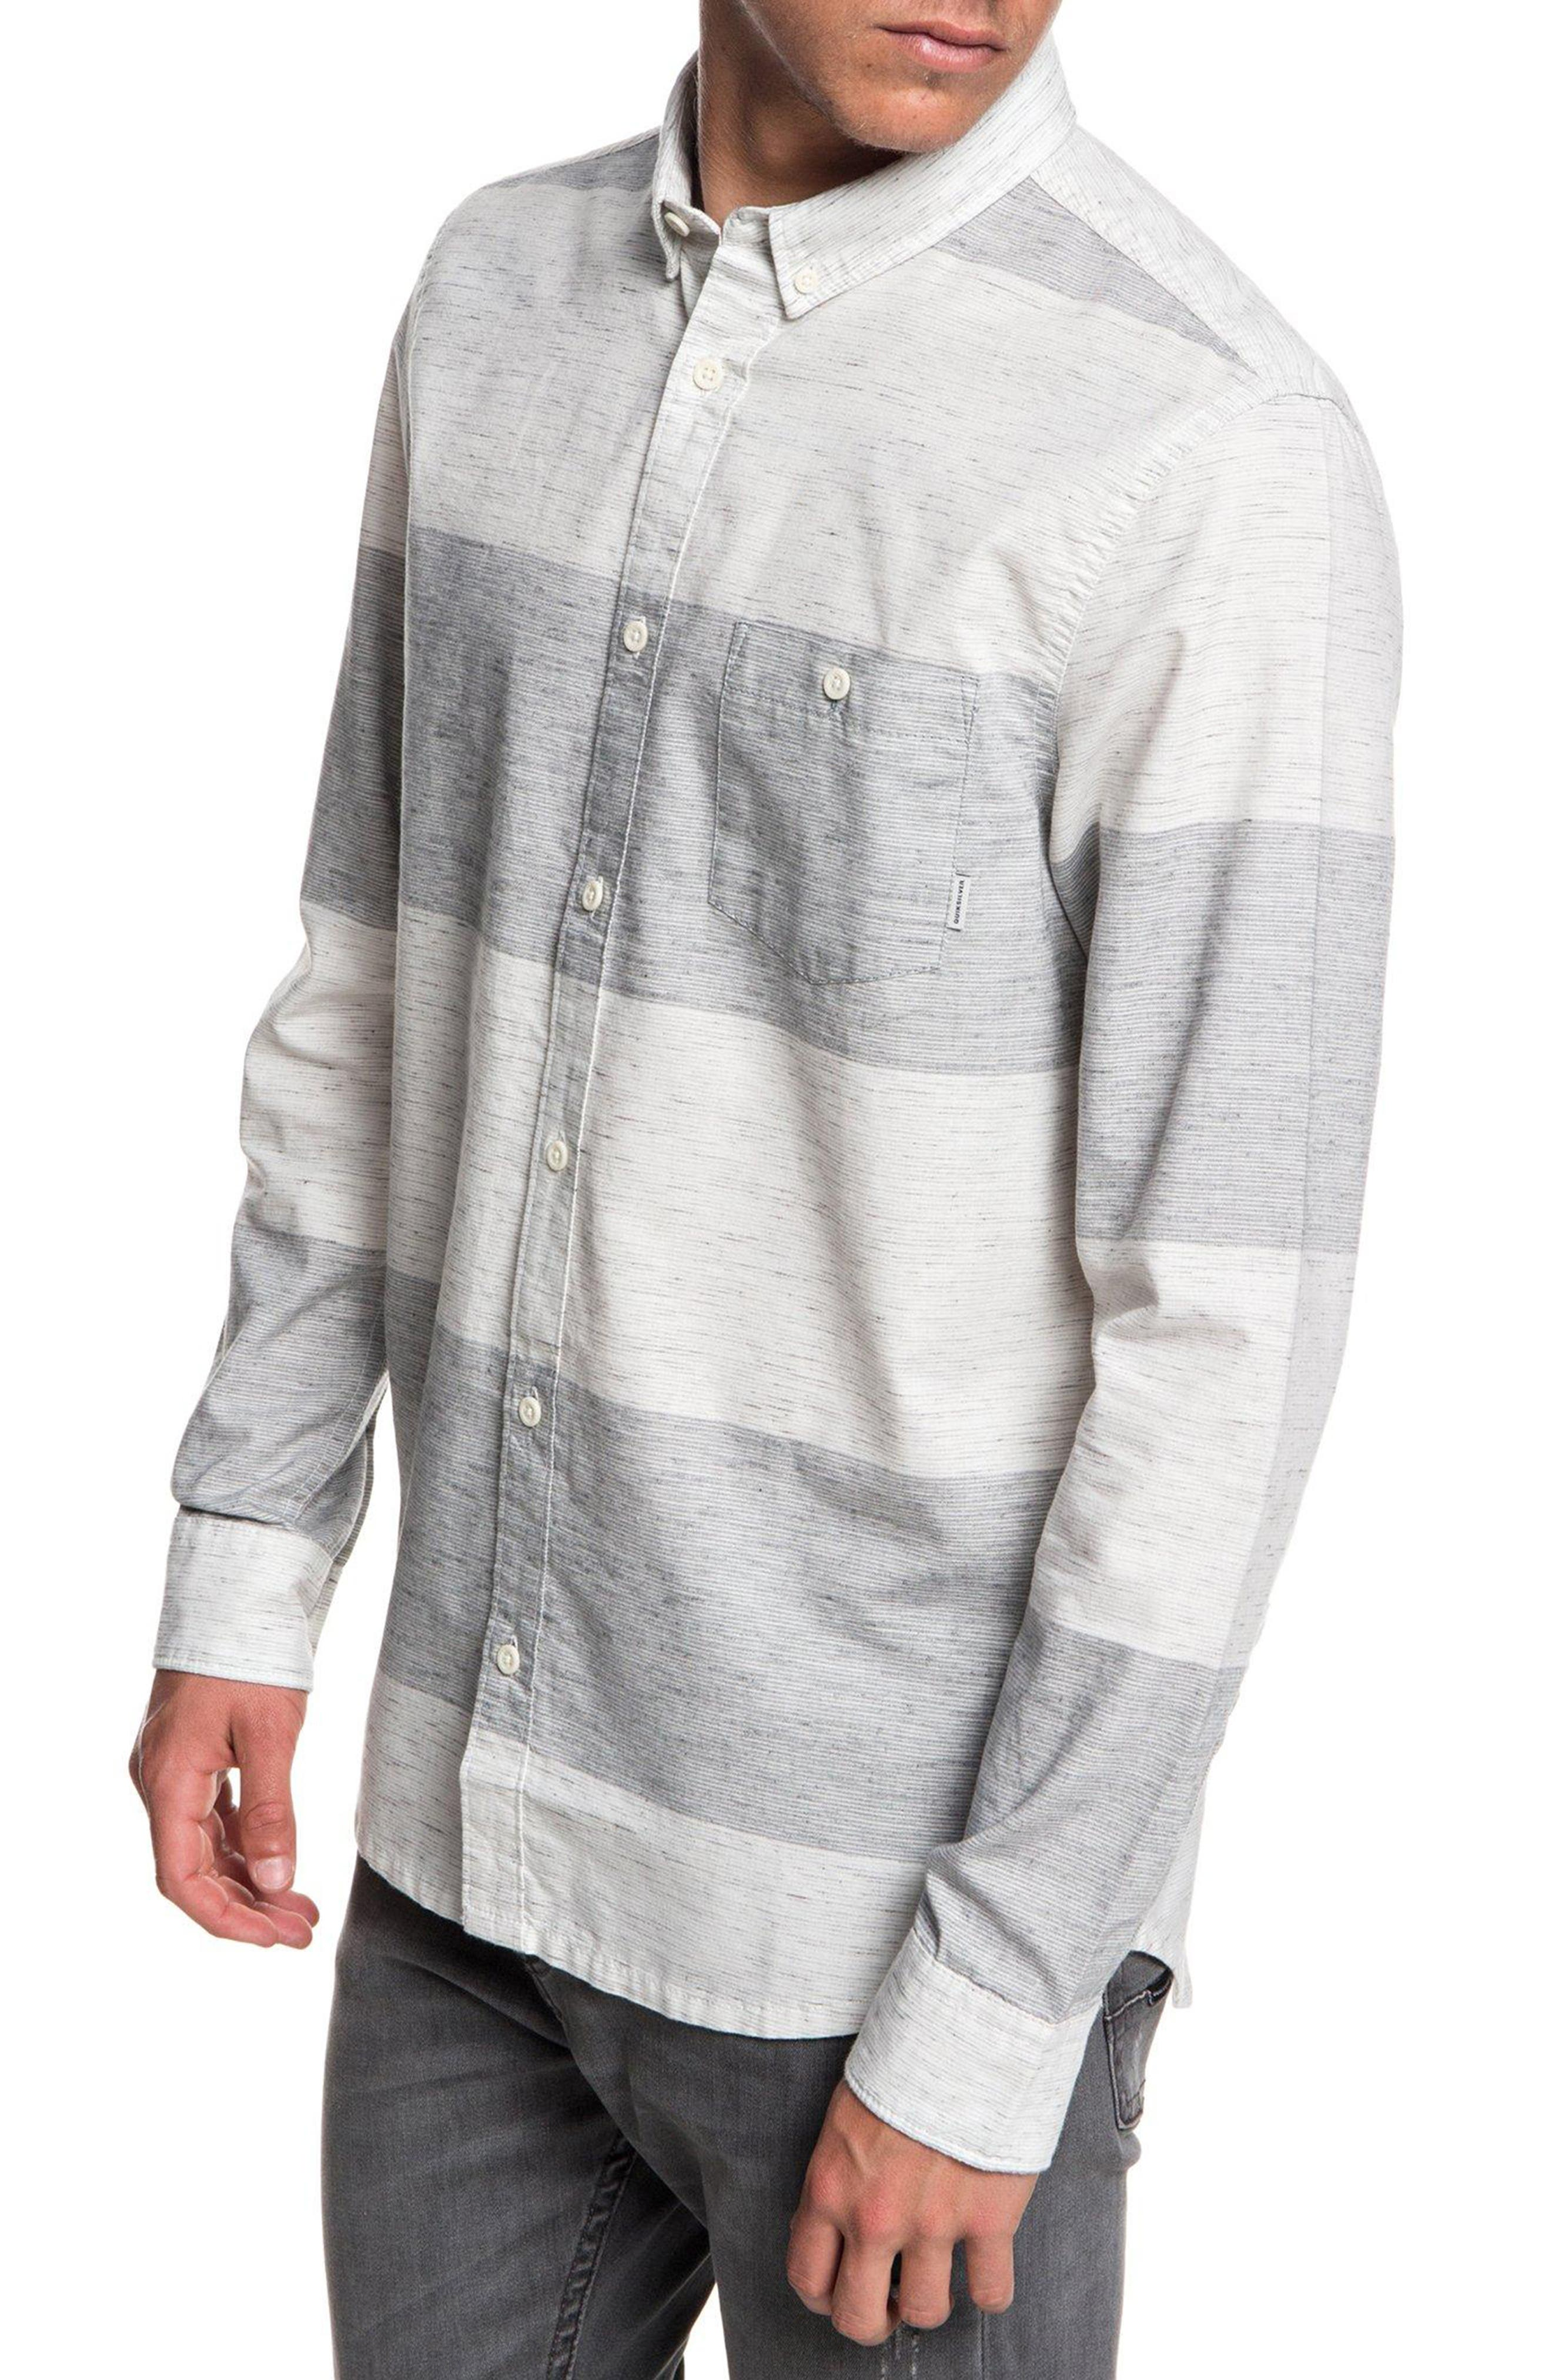 Minoo Valley Striped Shirt,                             Alternate thumbnail 3, color,                             IRON GATE MARBLE NEPPY